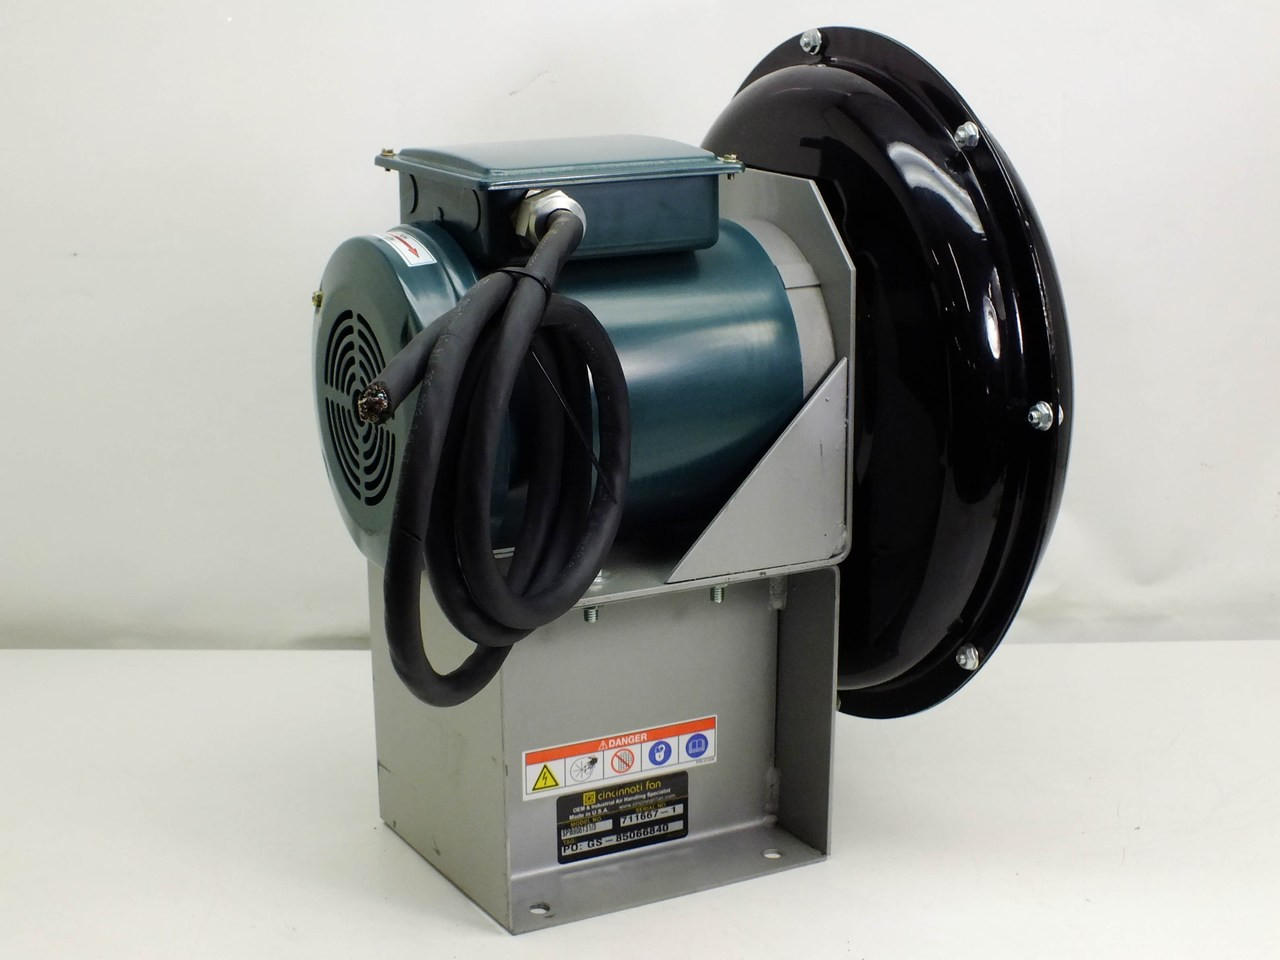 Cincinnati Fan Spb906t3 Centrifugal Blower Fan 4 Quot Port 1 3